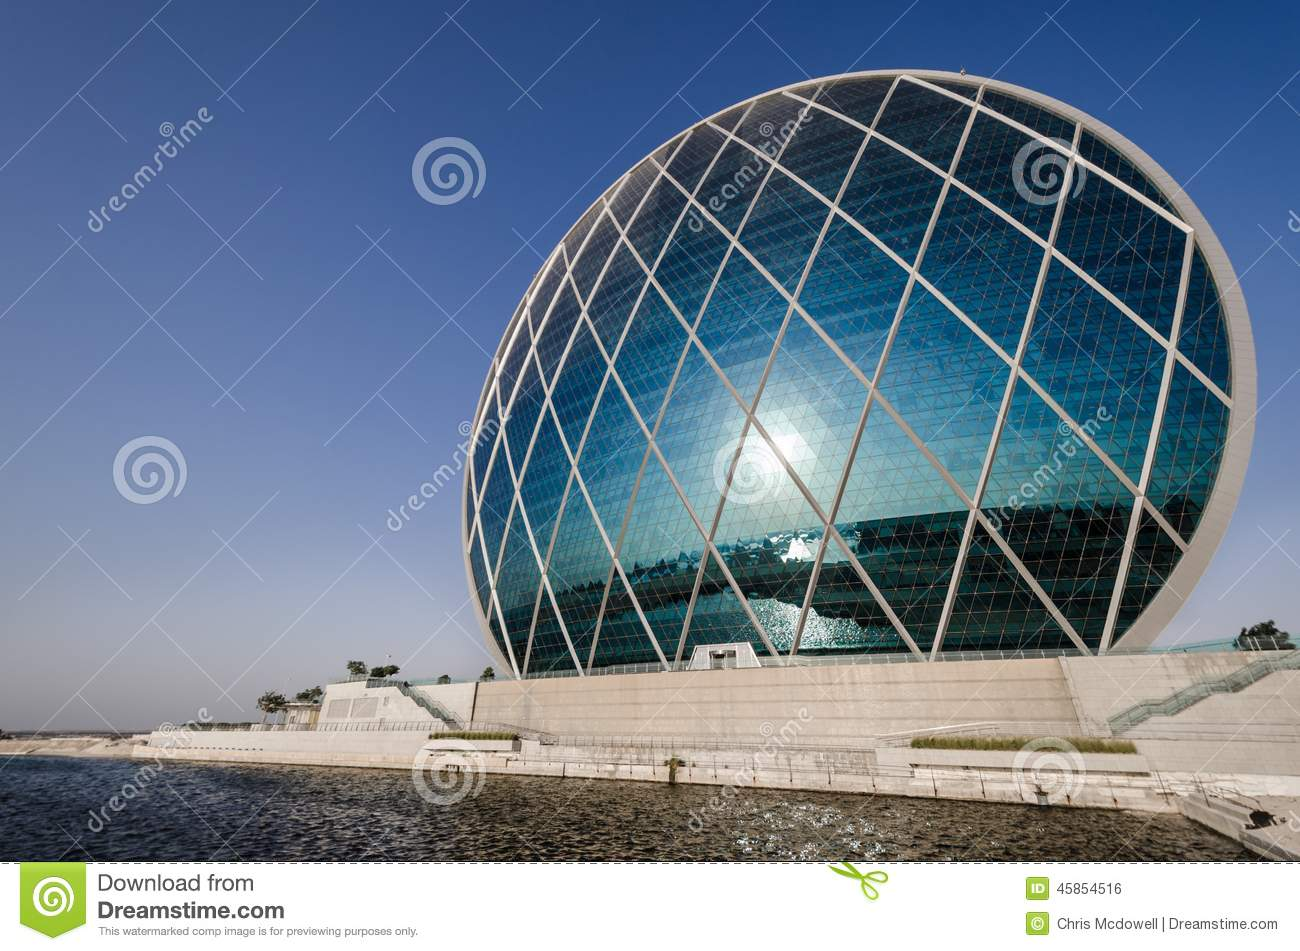 Aldar hq modern architecture abu dhabi editorial photo for Architectural design companies in abu dhabi